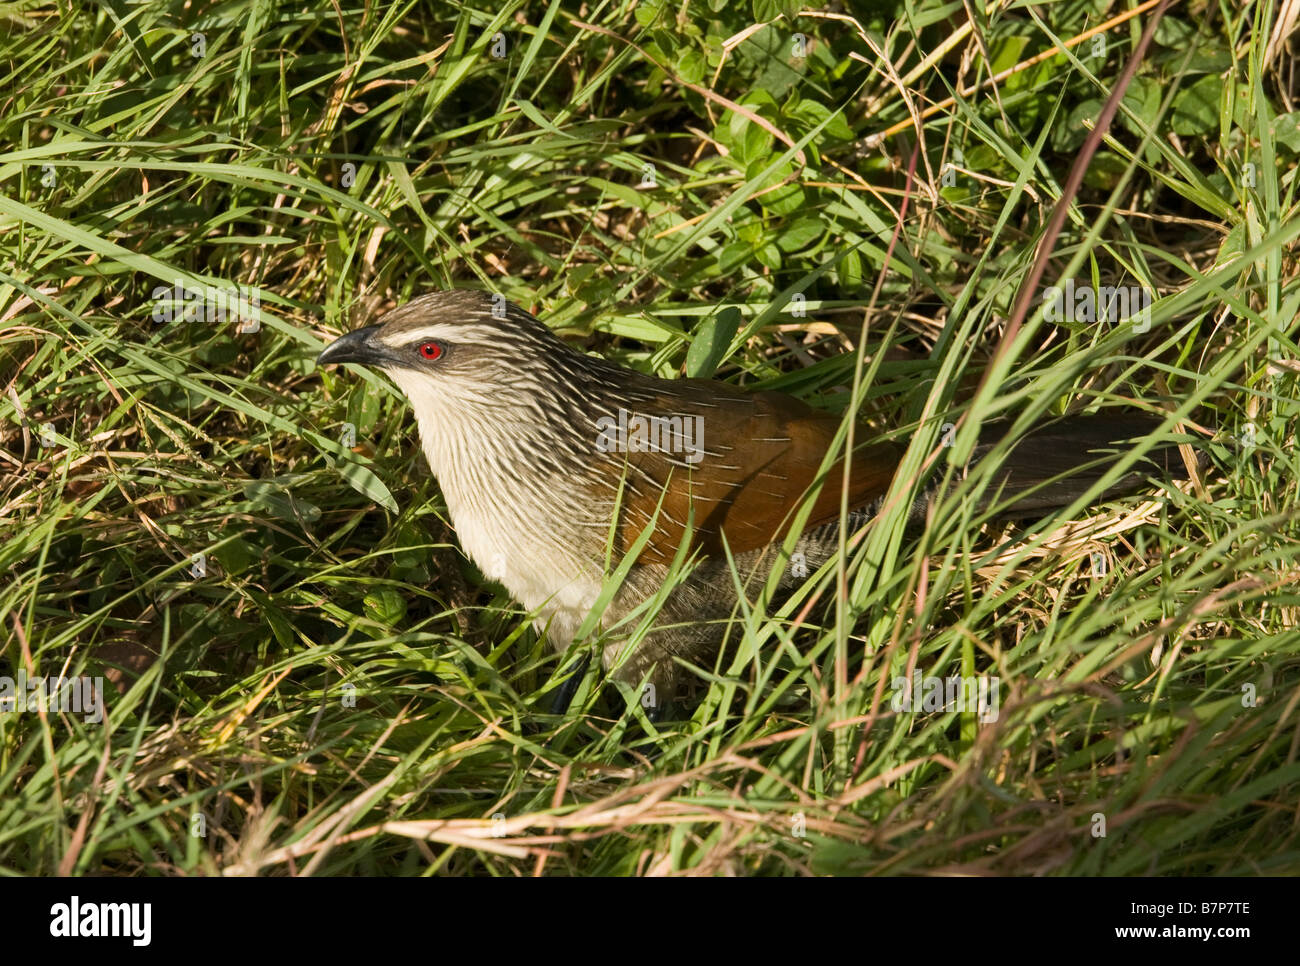 White Browed Coucal on the plains of the Masai Mara in Kenya - Stock Image